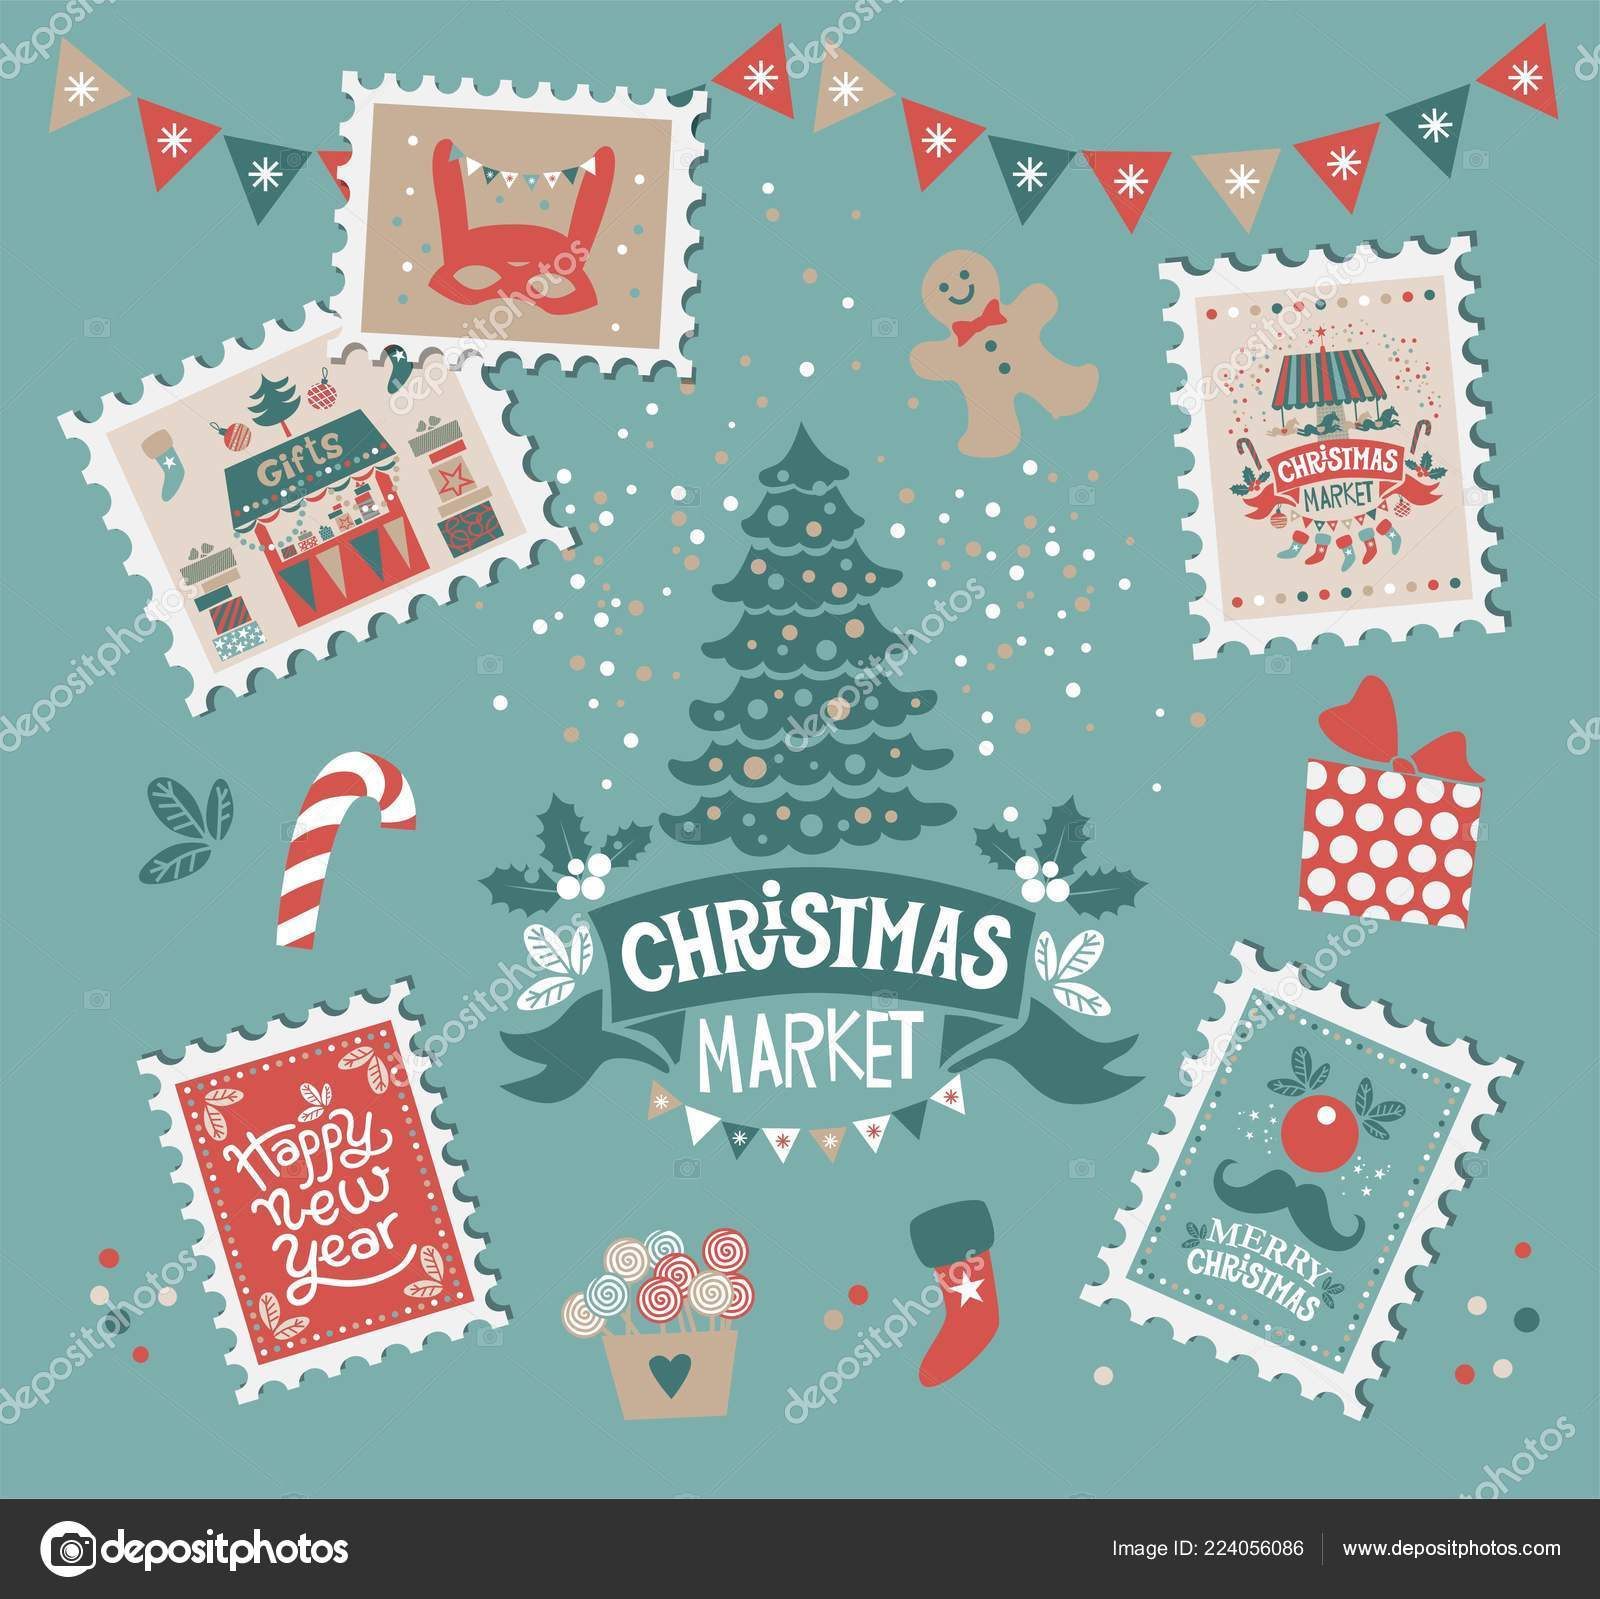 merry christmas happy new year set stamps christmas elements christmas stock vector - Merry Christmas And Happy New Year Images